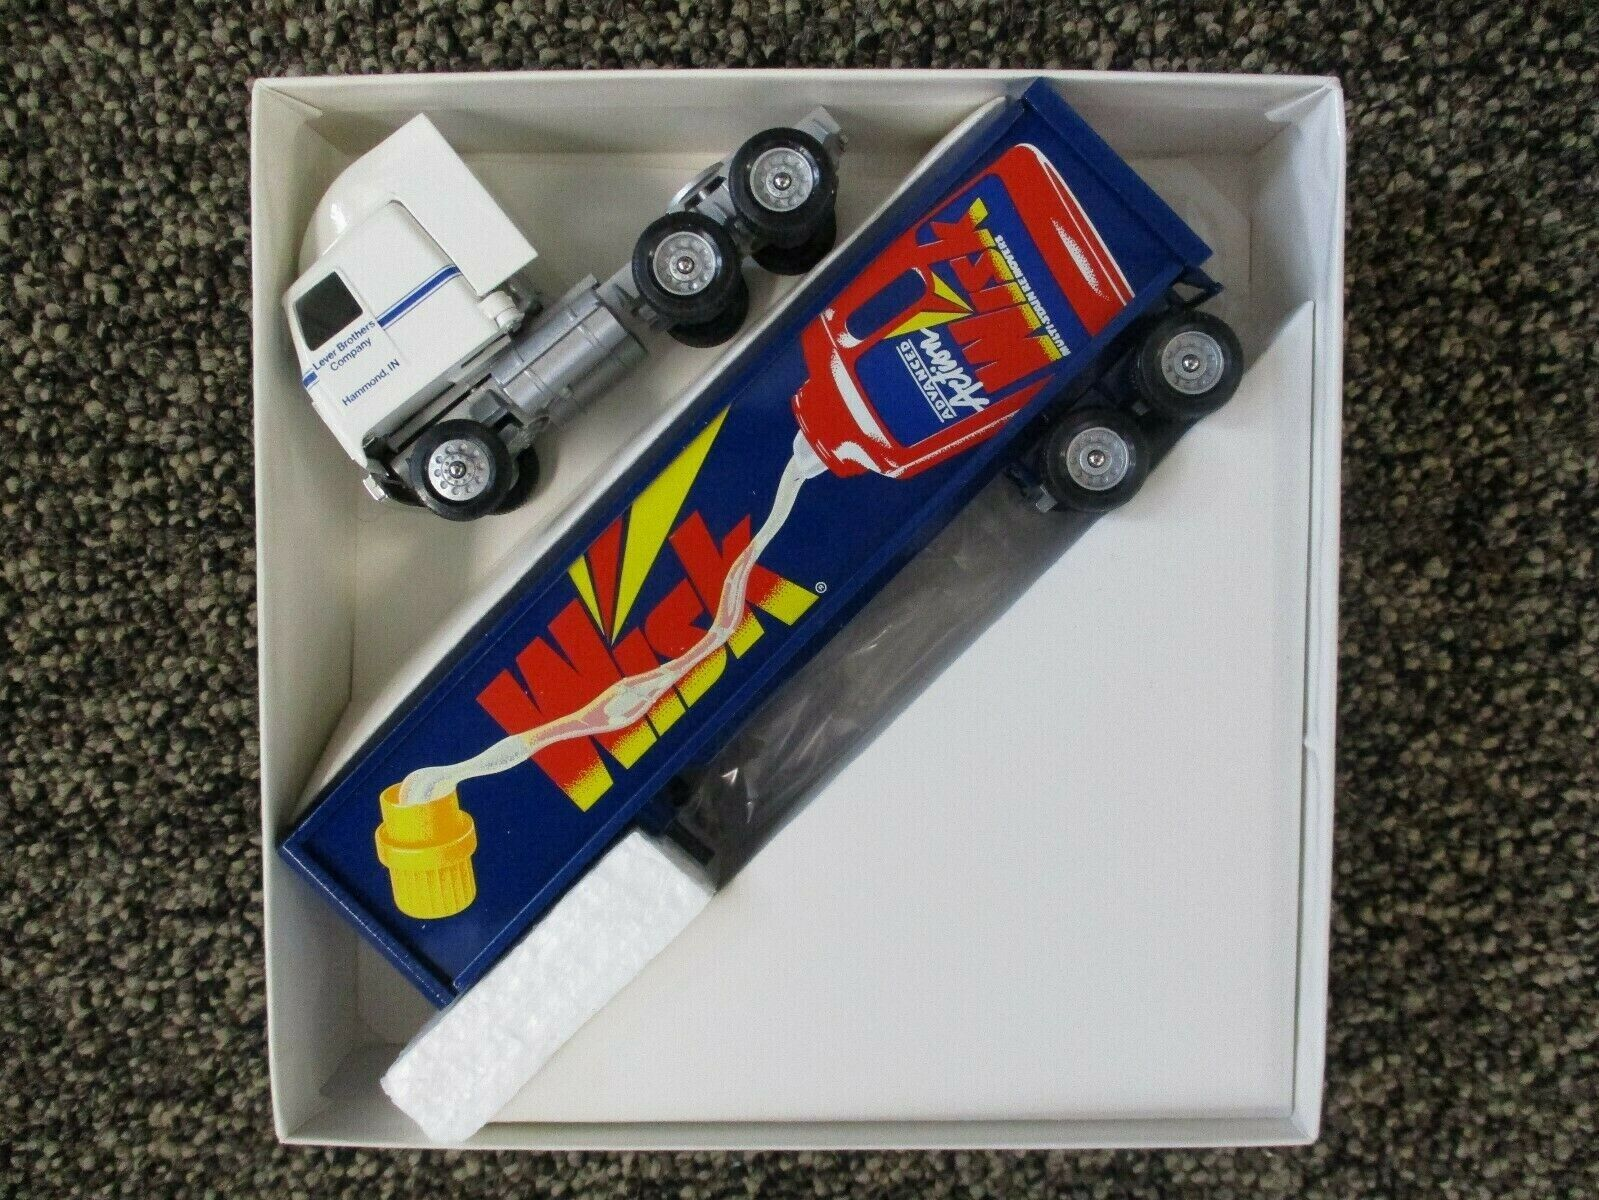 Winross 1/64 Scale Diecast Tractor Trailer Wisk Laundry Detergent New In Box